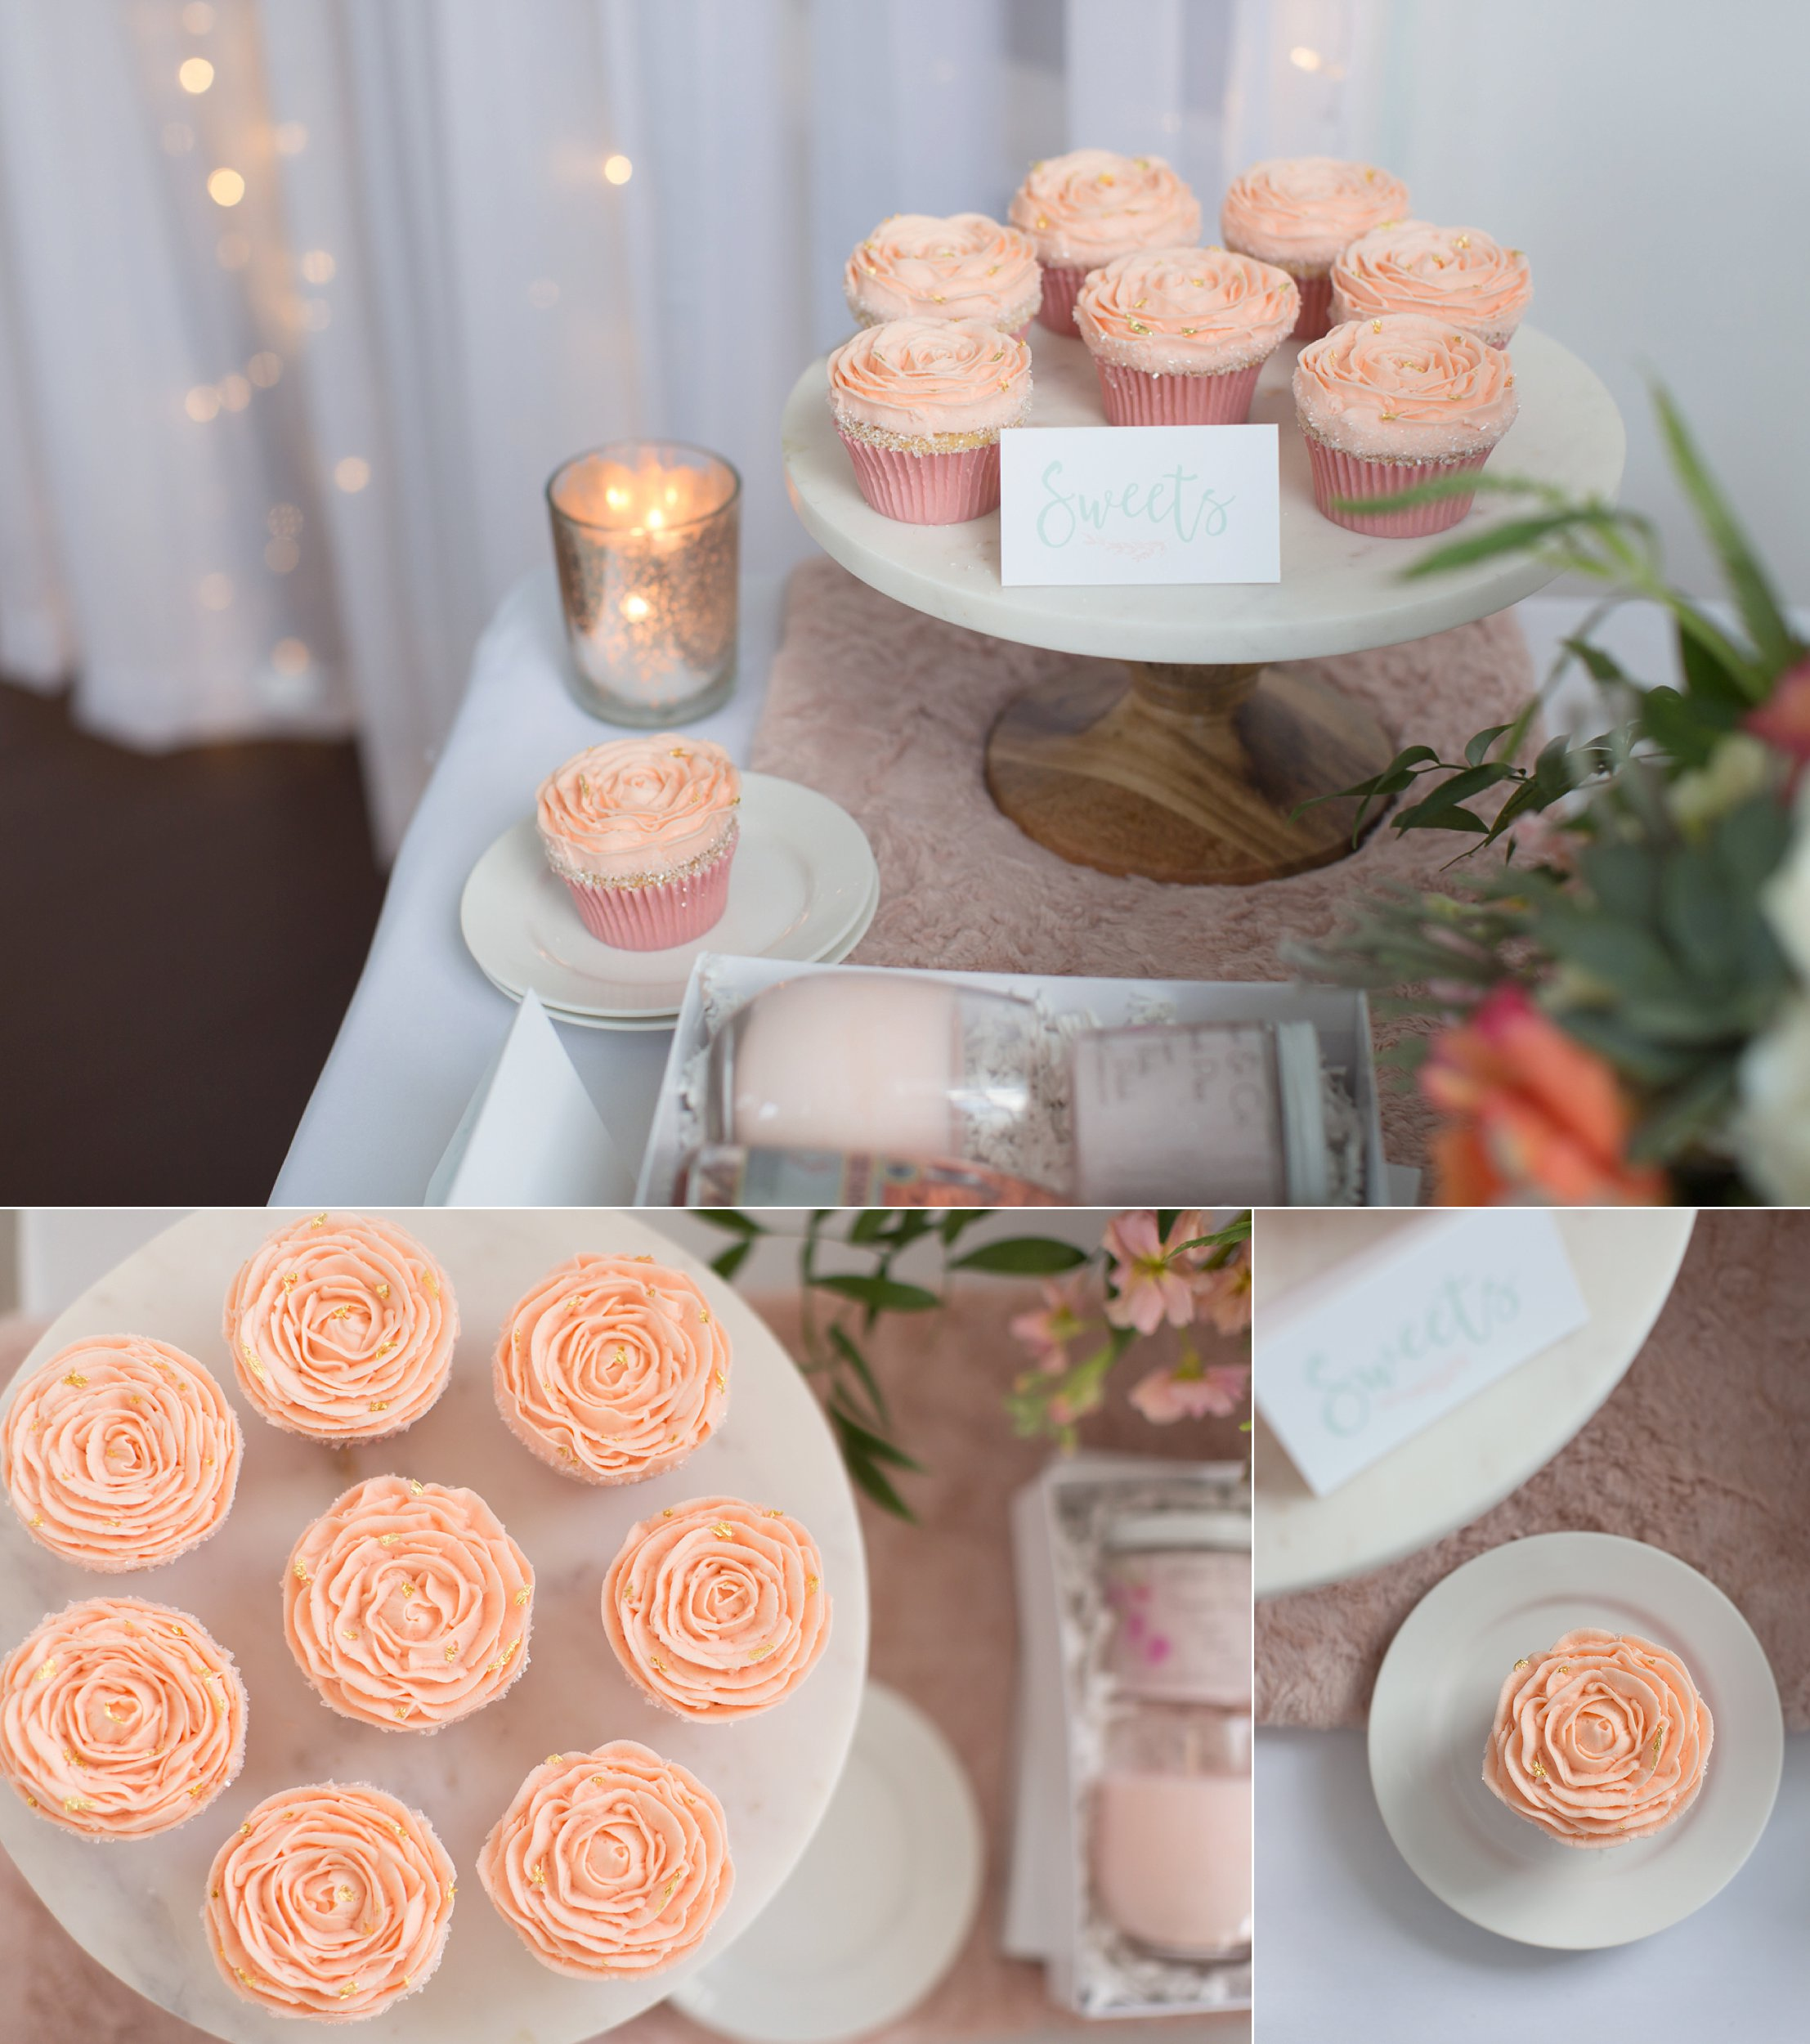 PEACH ROSE CUPCAKES WITH GOLD FLAKE